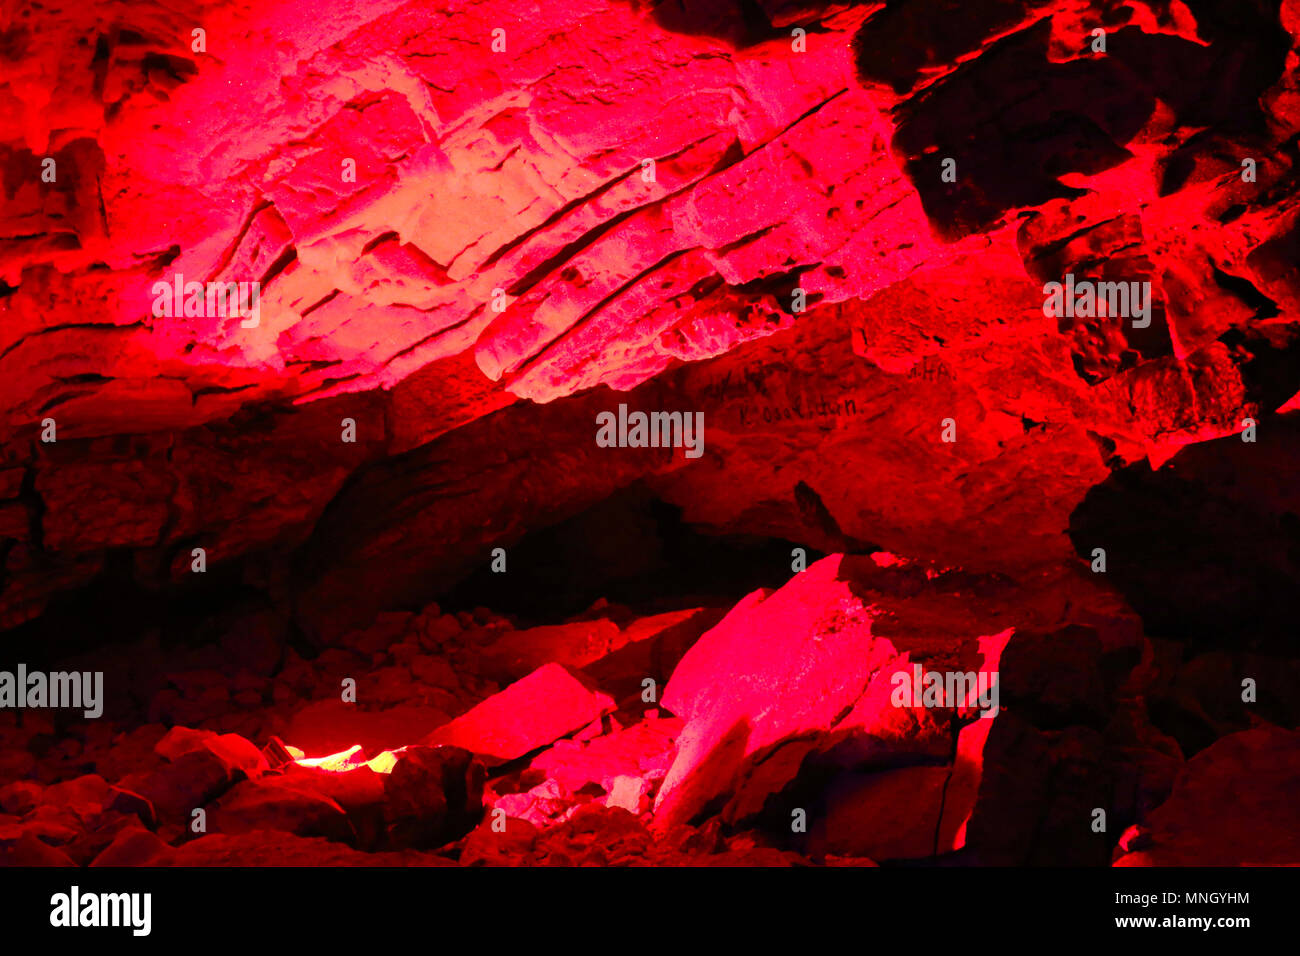 Gypsum cave, anhydrite, sulfate, Anhydrite rocks from cave ceiling, gypsum cave, anhydrite, sulfate, carbonate minerals. Kungur cave, artificial light - Stock Image